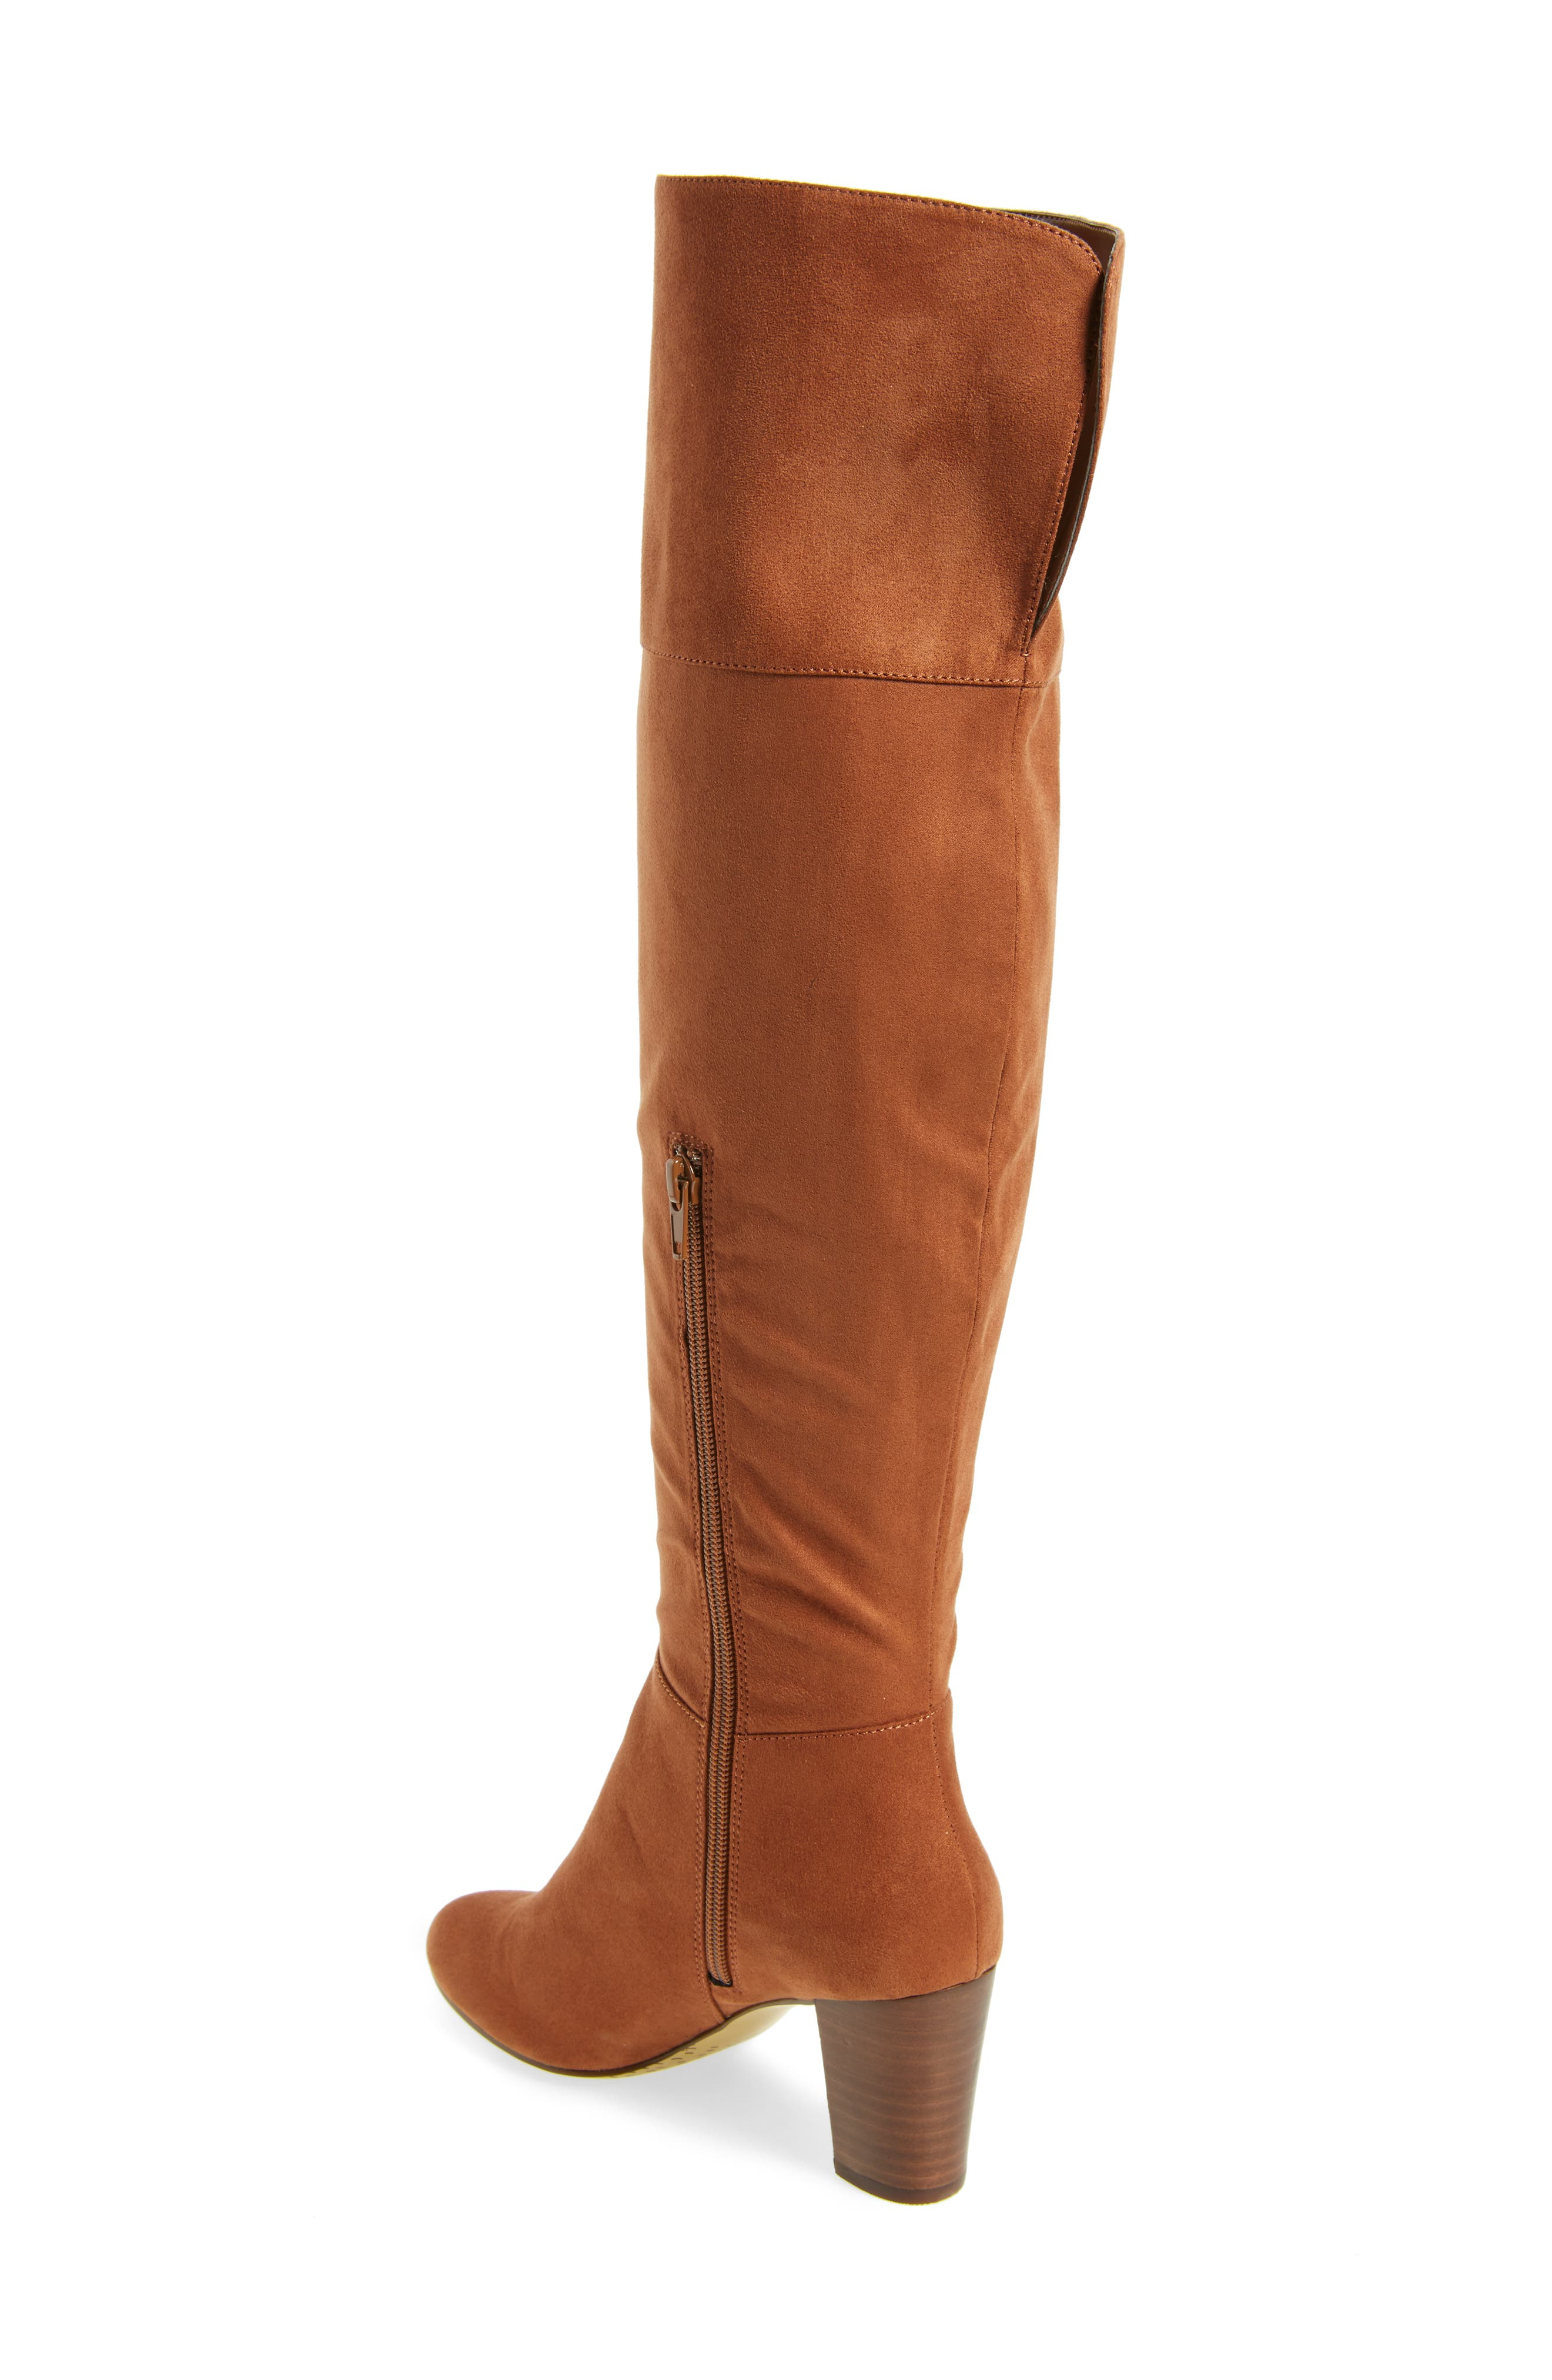 Telluride II Over the Knee Boot,                             Alternate thumbnail 2, color,                             Camel Suede